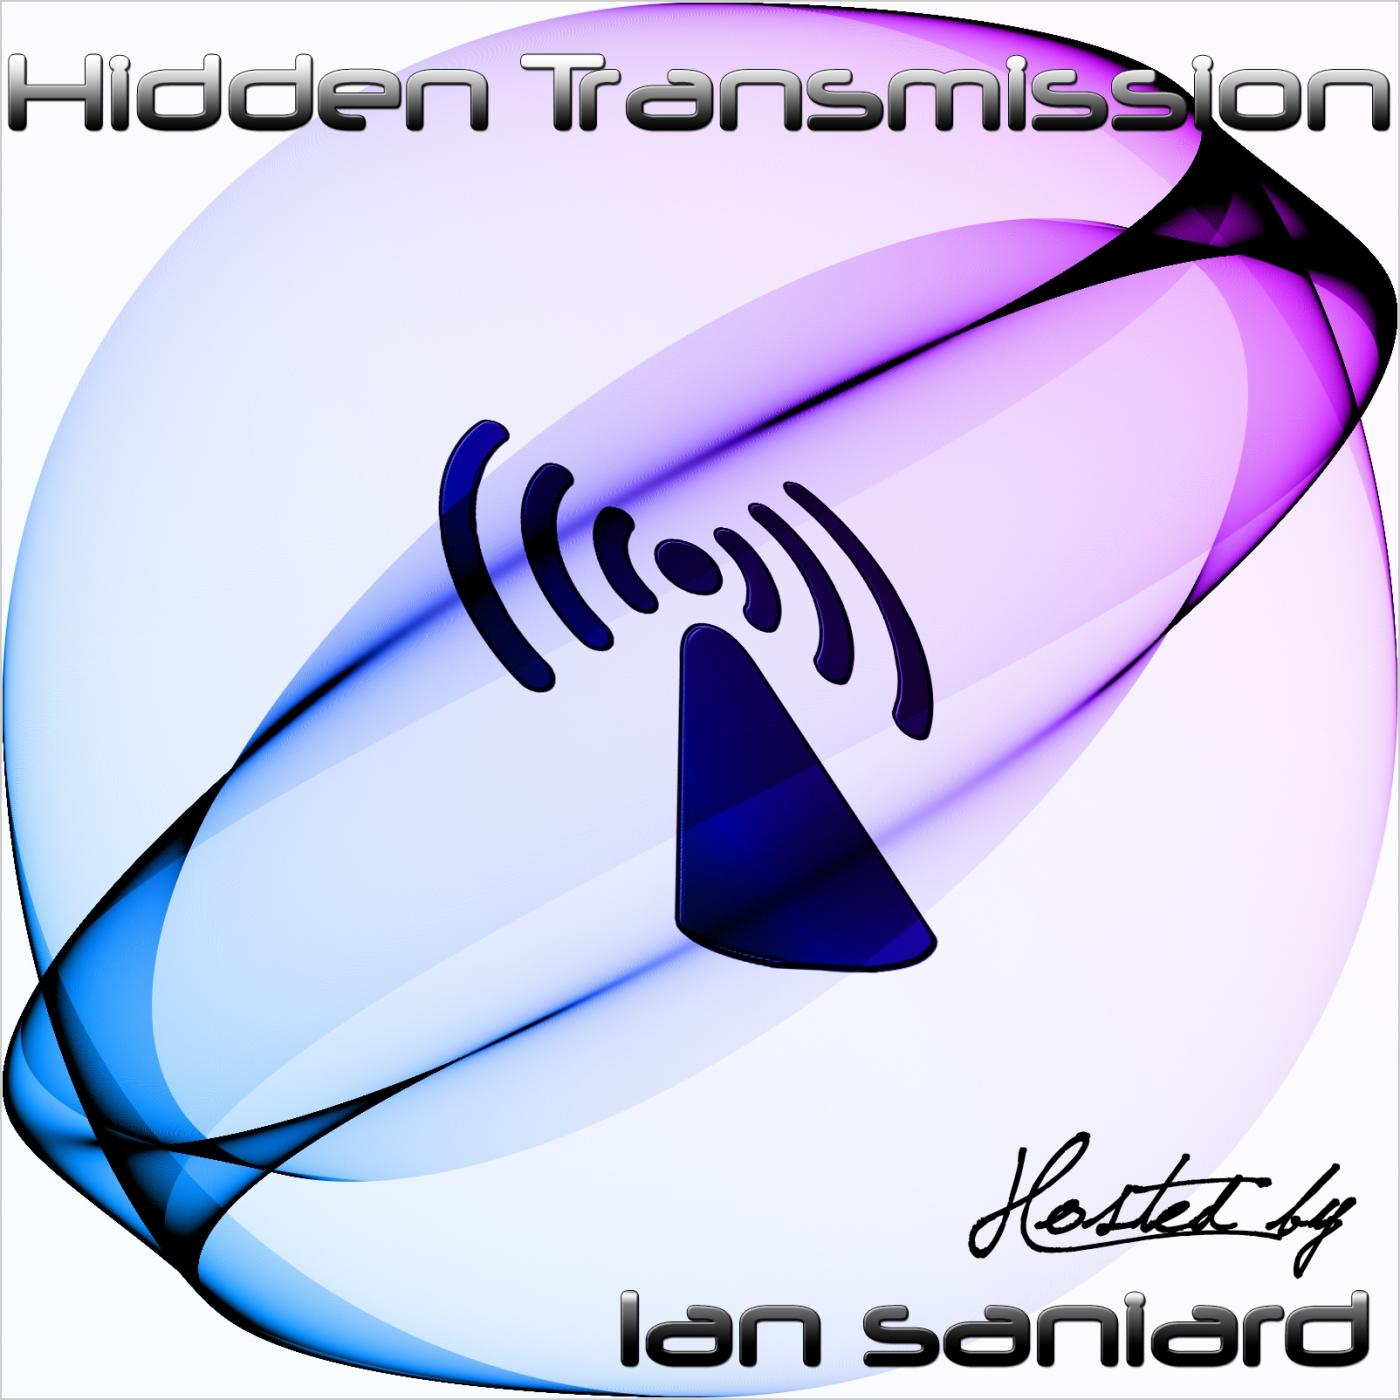 Hidden Transmission